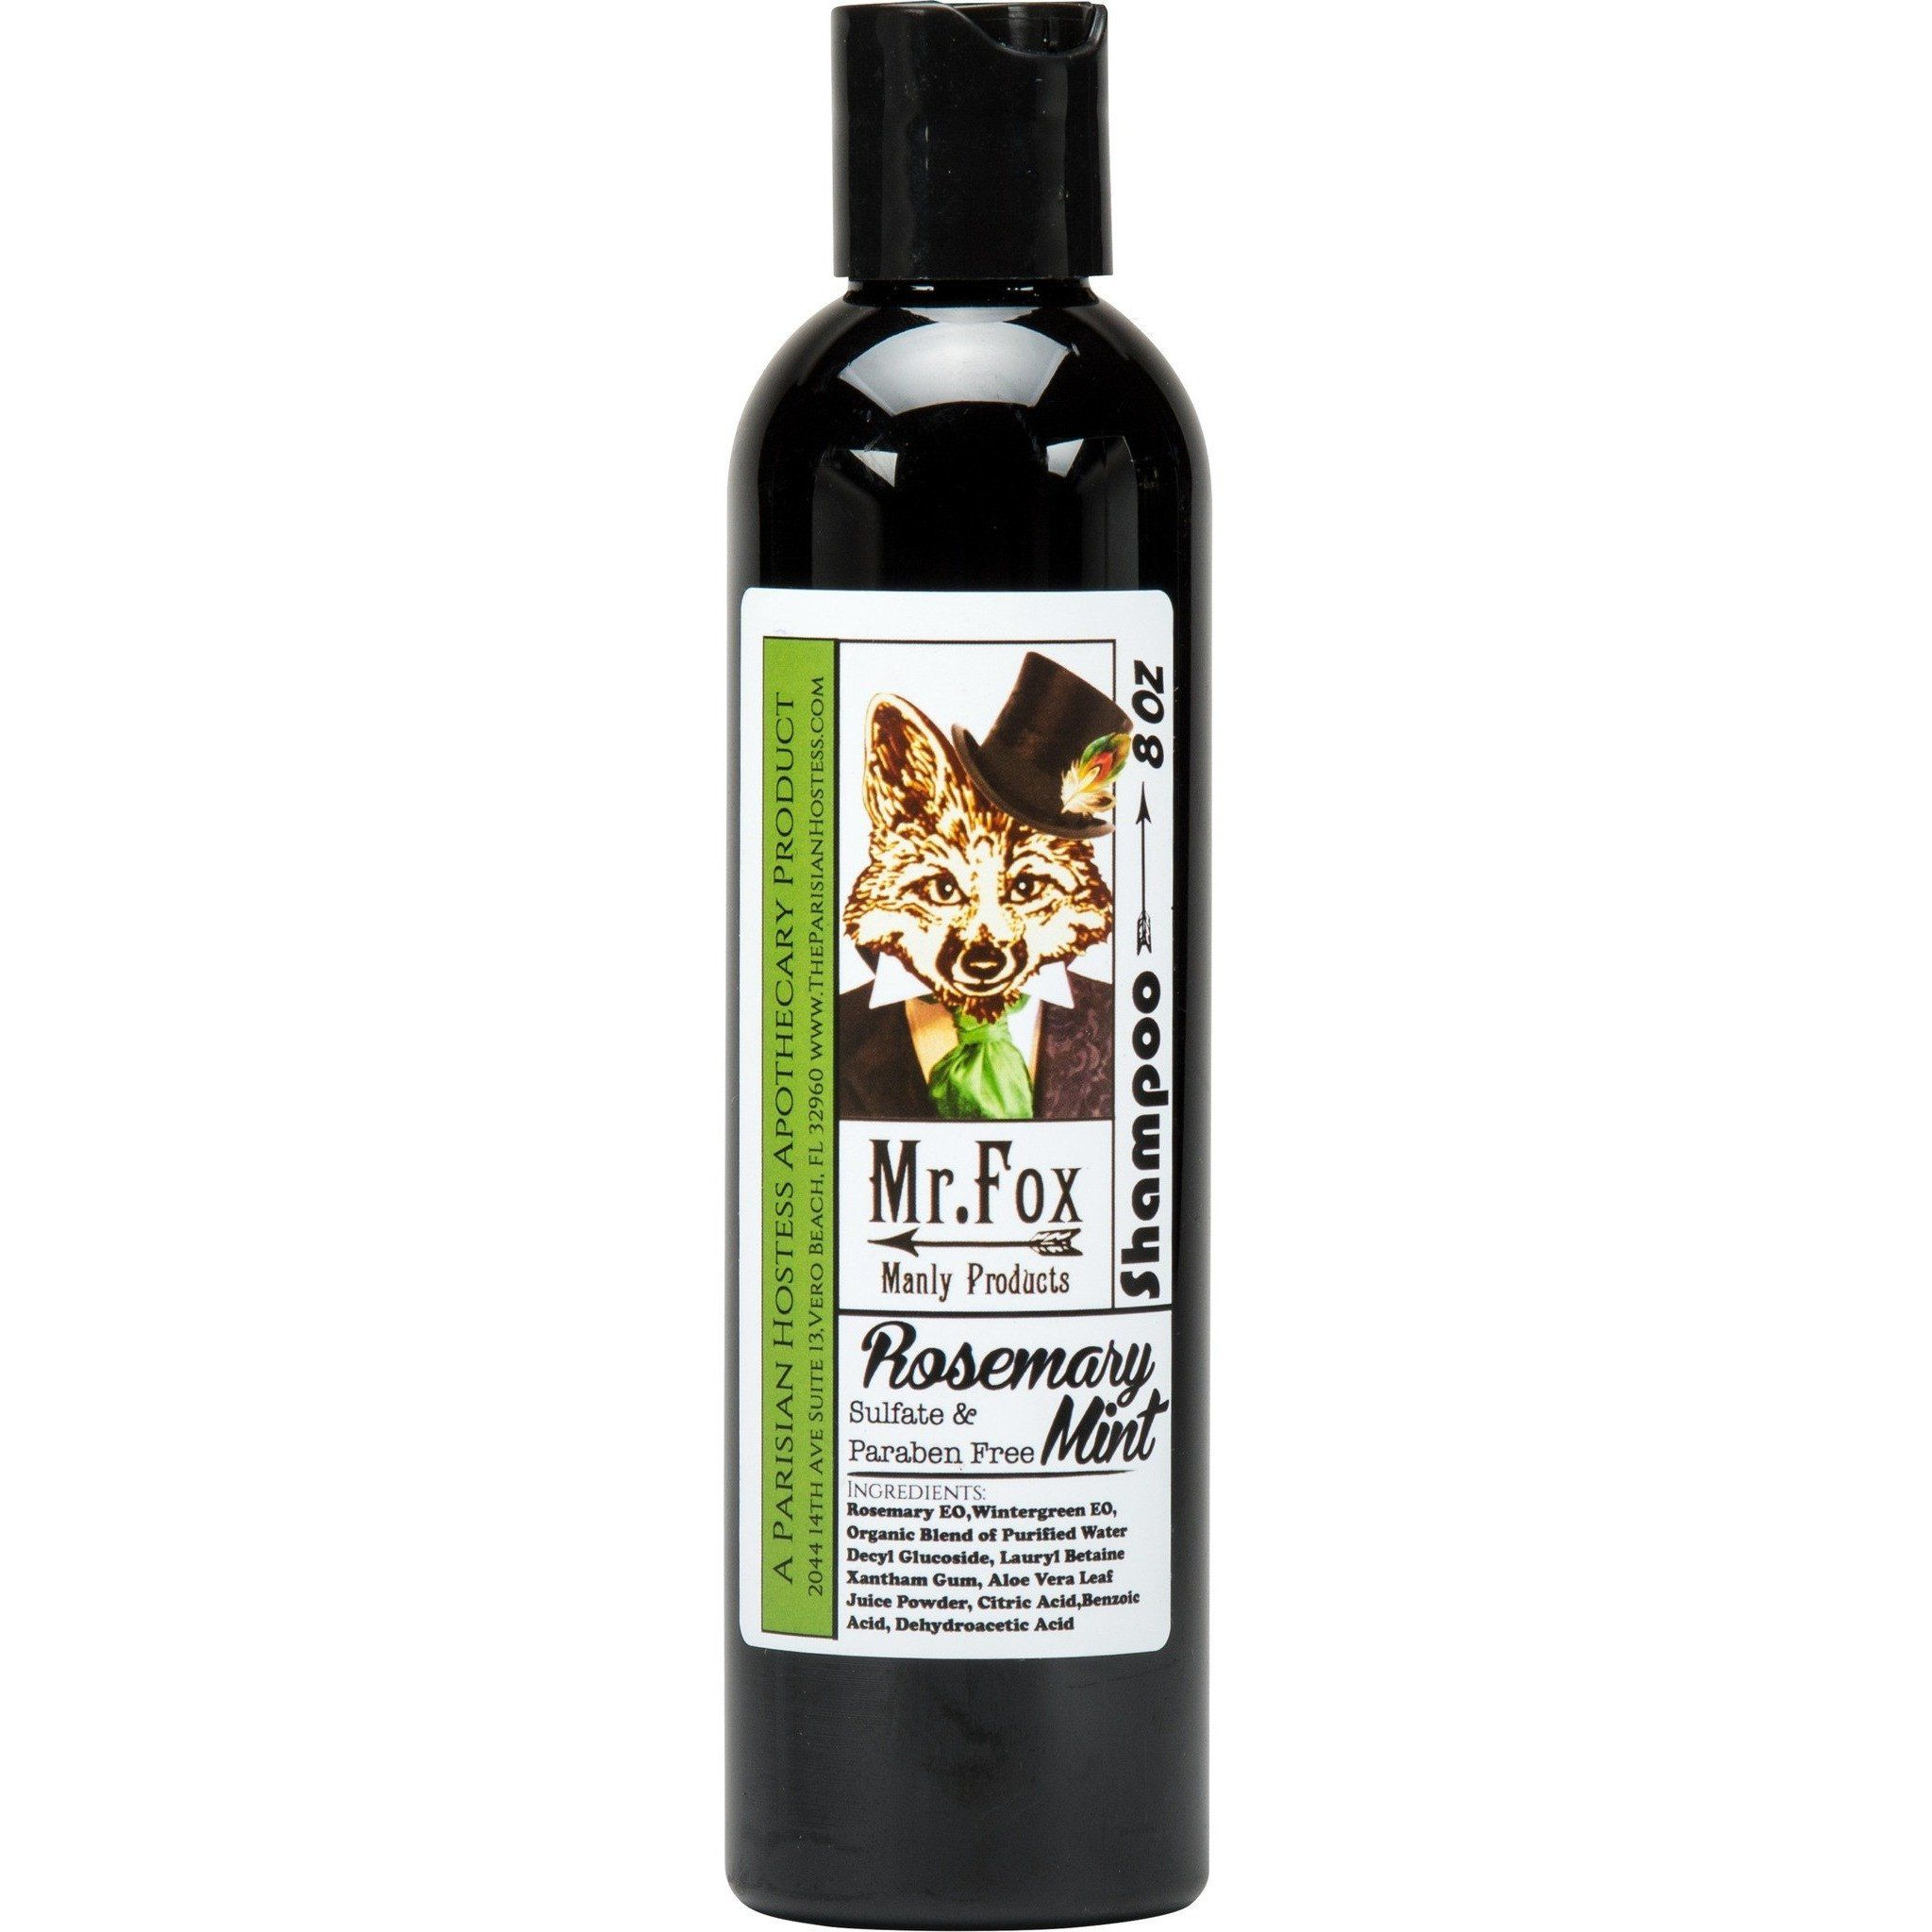 Mr. Fox Rosemary & Mint Shampoo